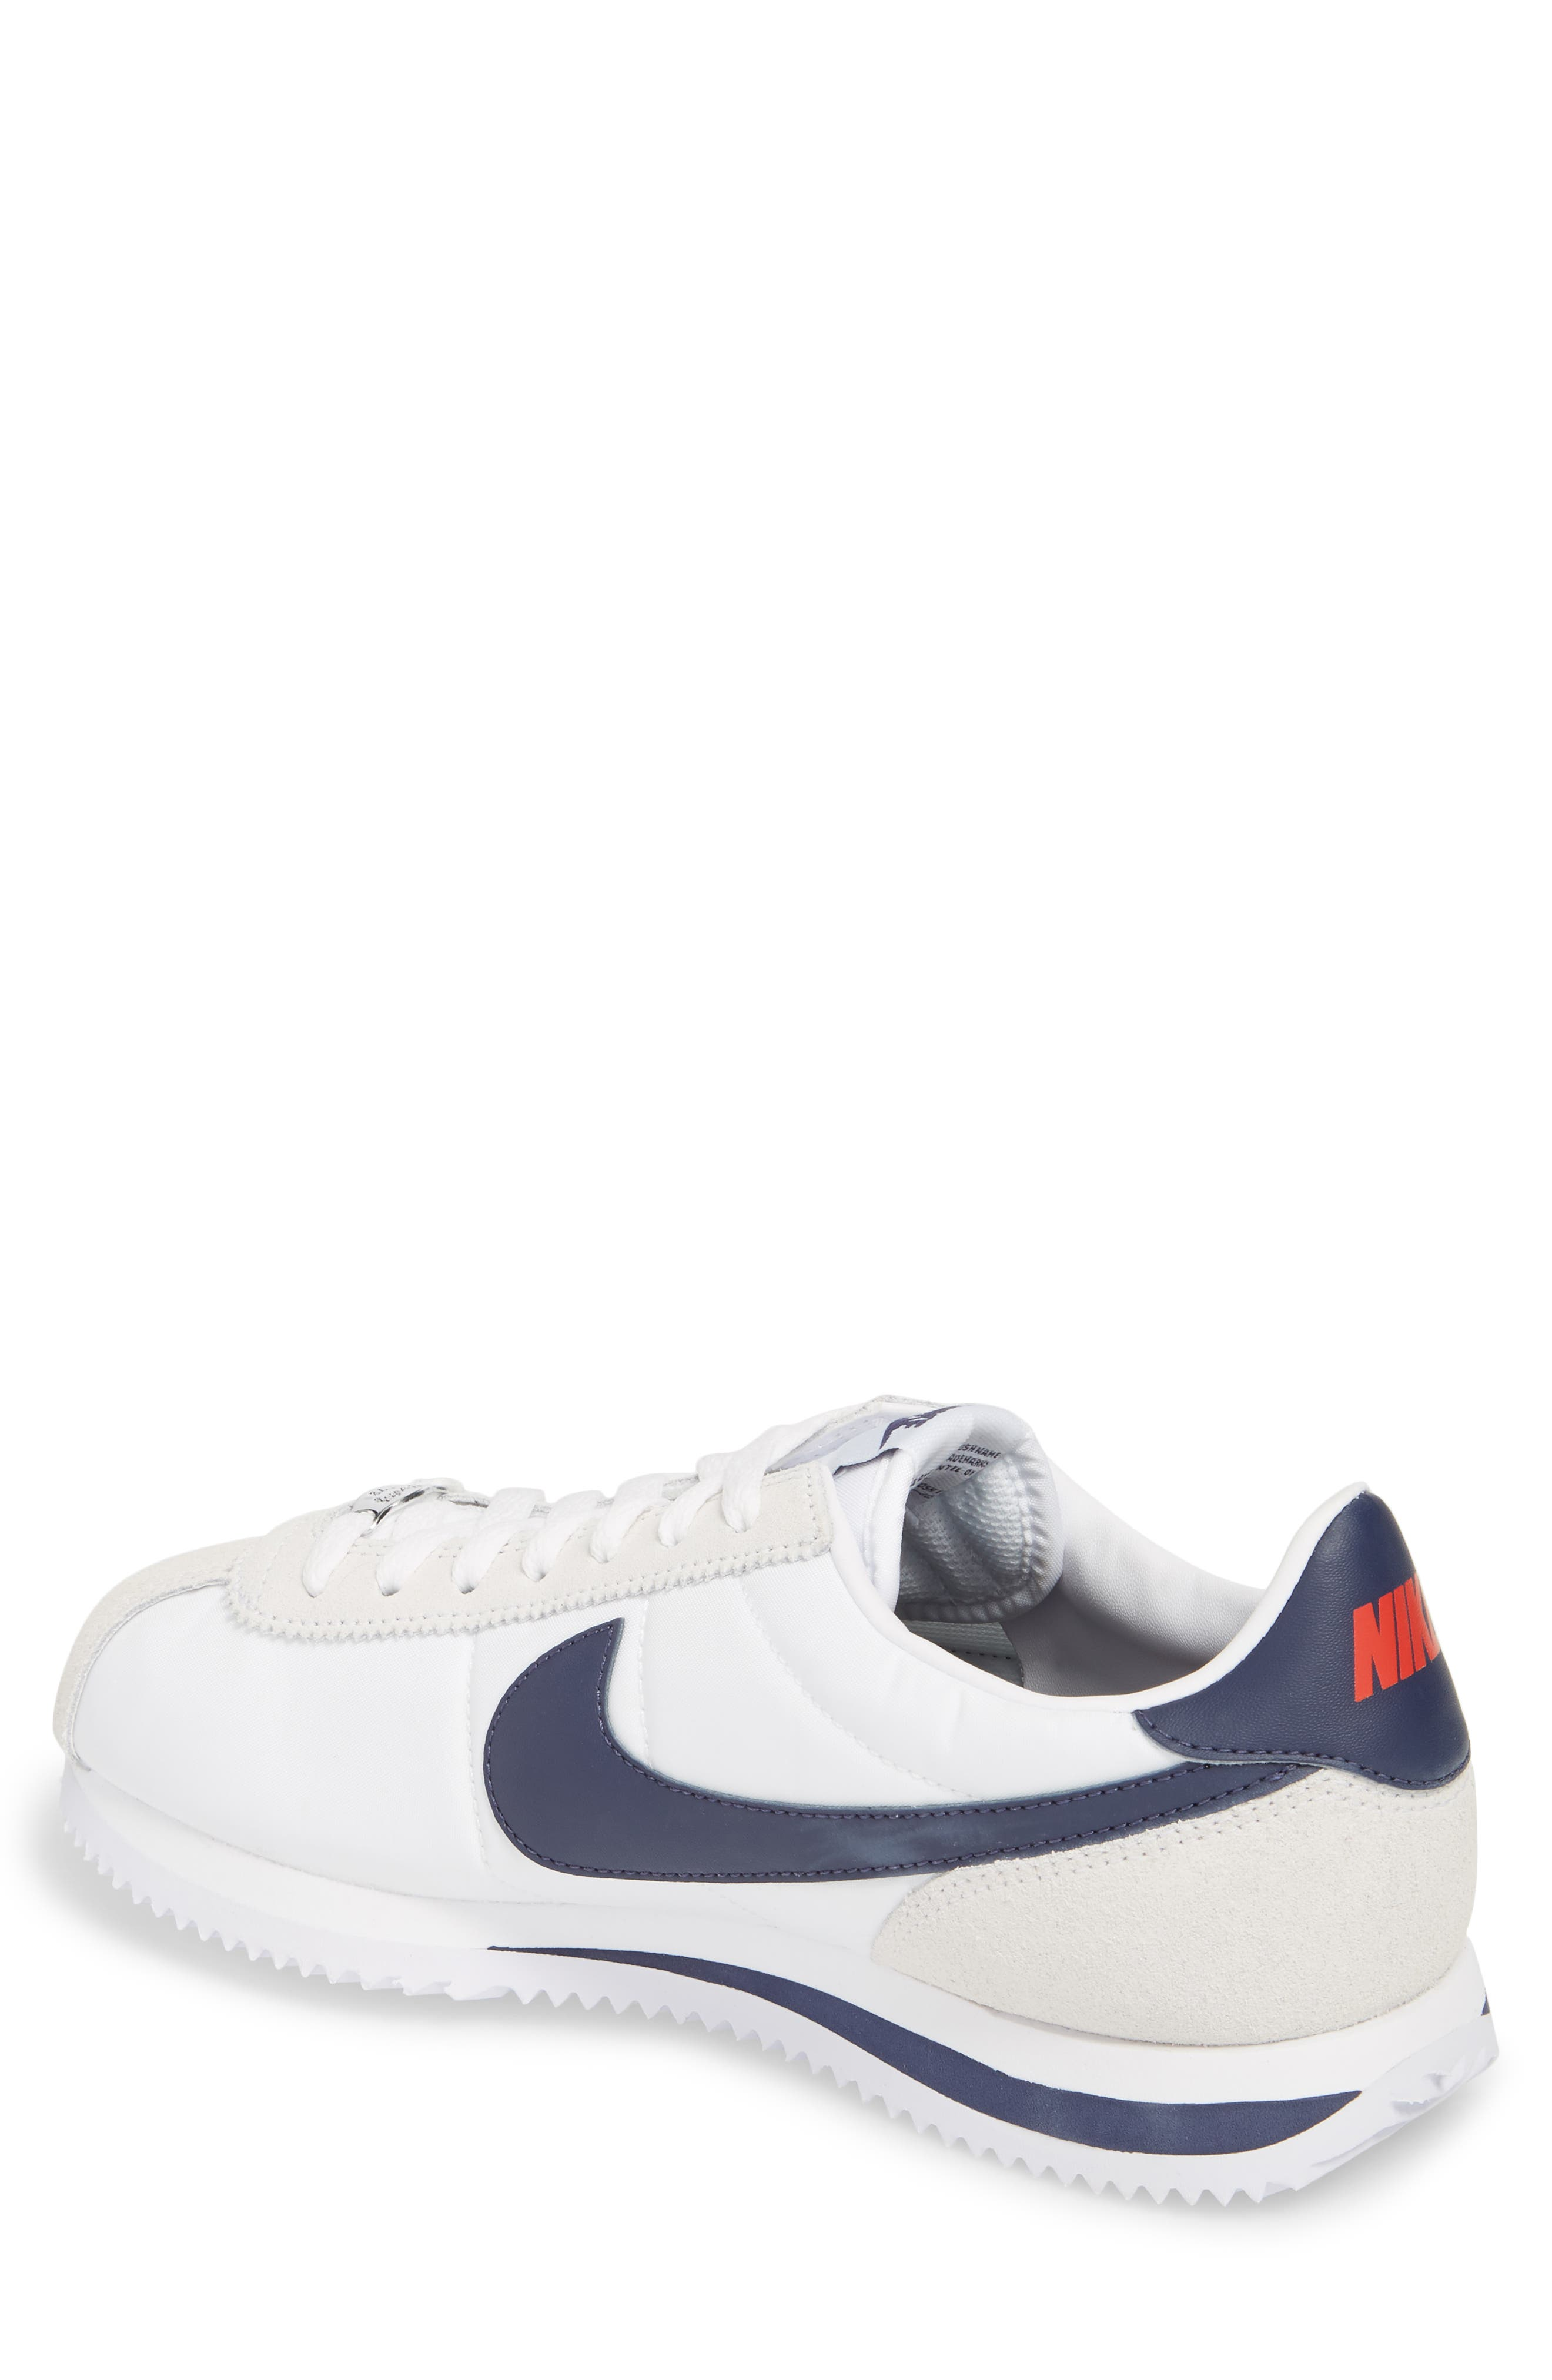 Cortez Basic Nylon Sneaker,                             Alternate thumbnail 2, color,                             102